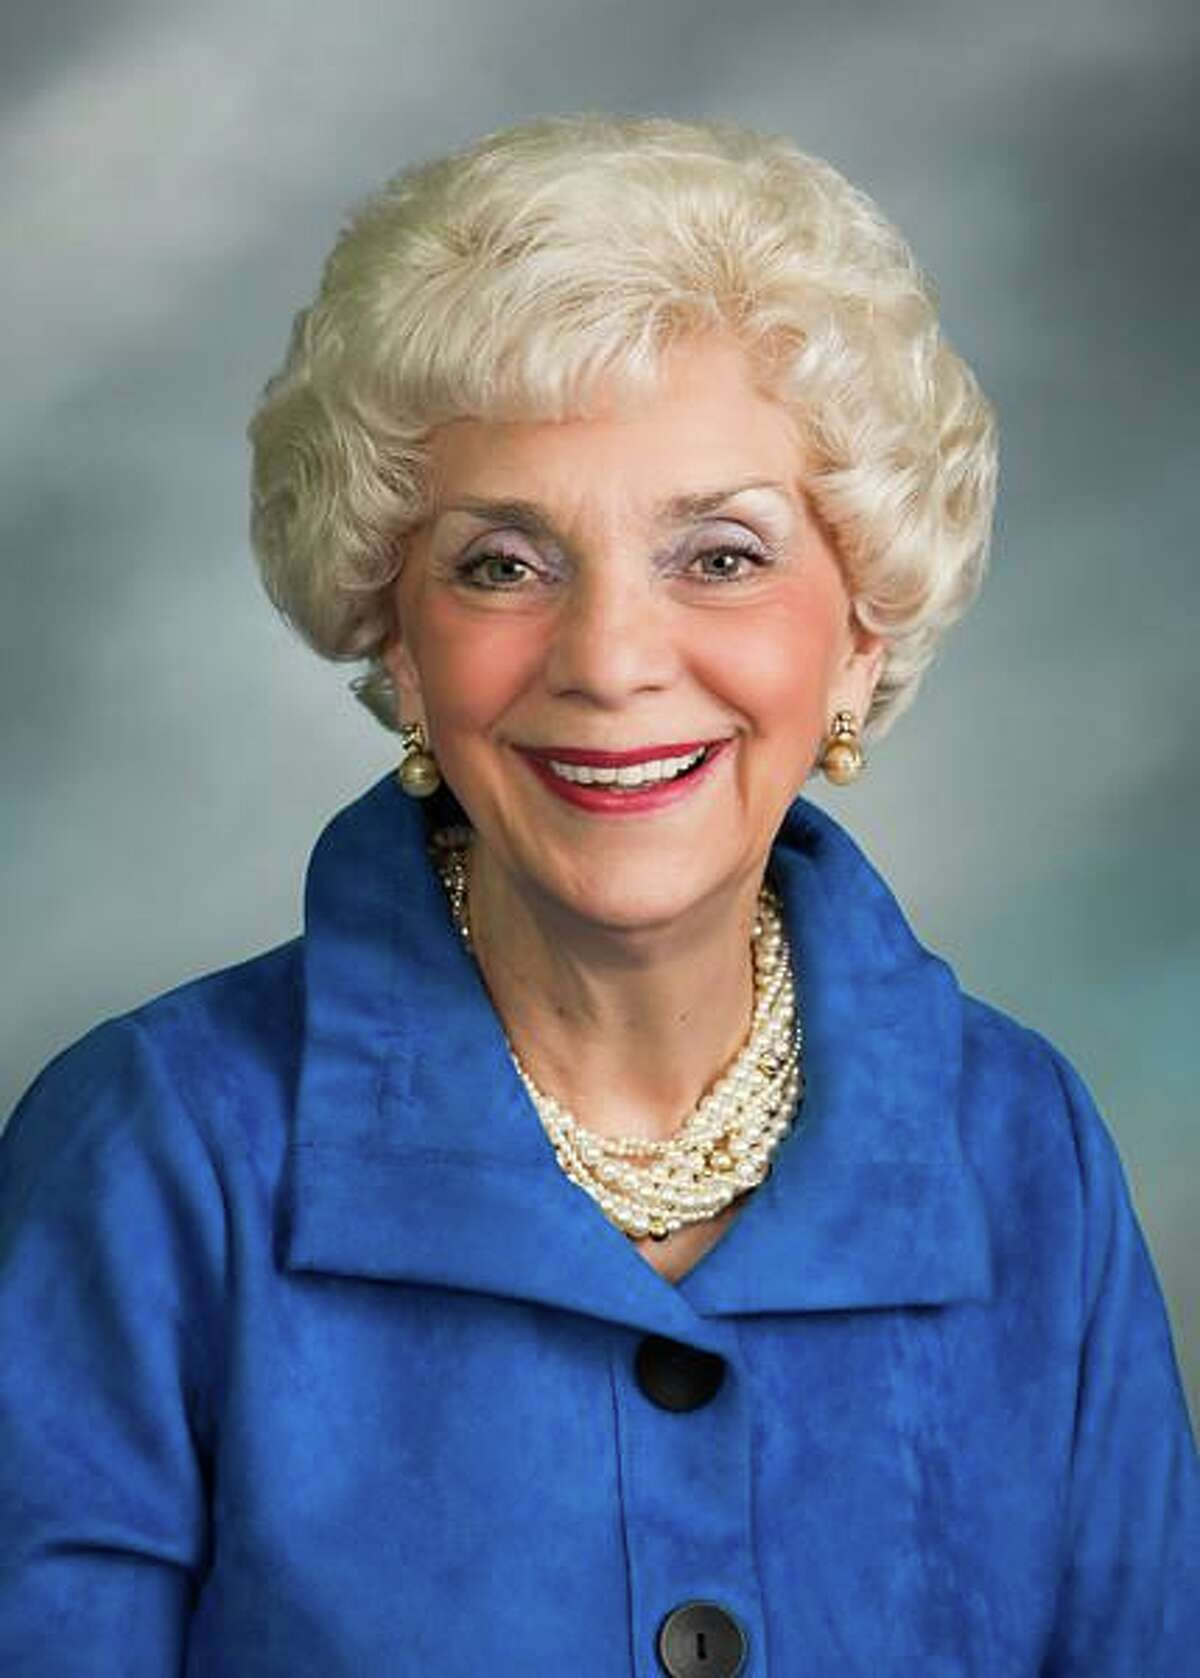 Bonnie Holland, a longtime administrator in the Katy Independent School District, plans todo volunteer work with Katy's Education Foundation and Bonnie Holland Elementary School after she retires in June.